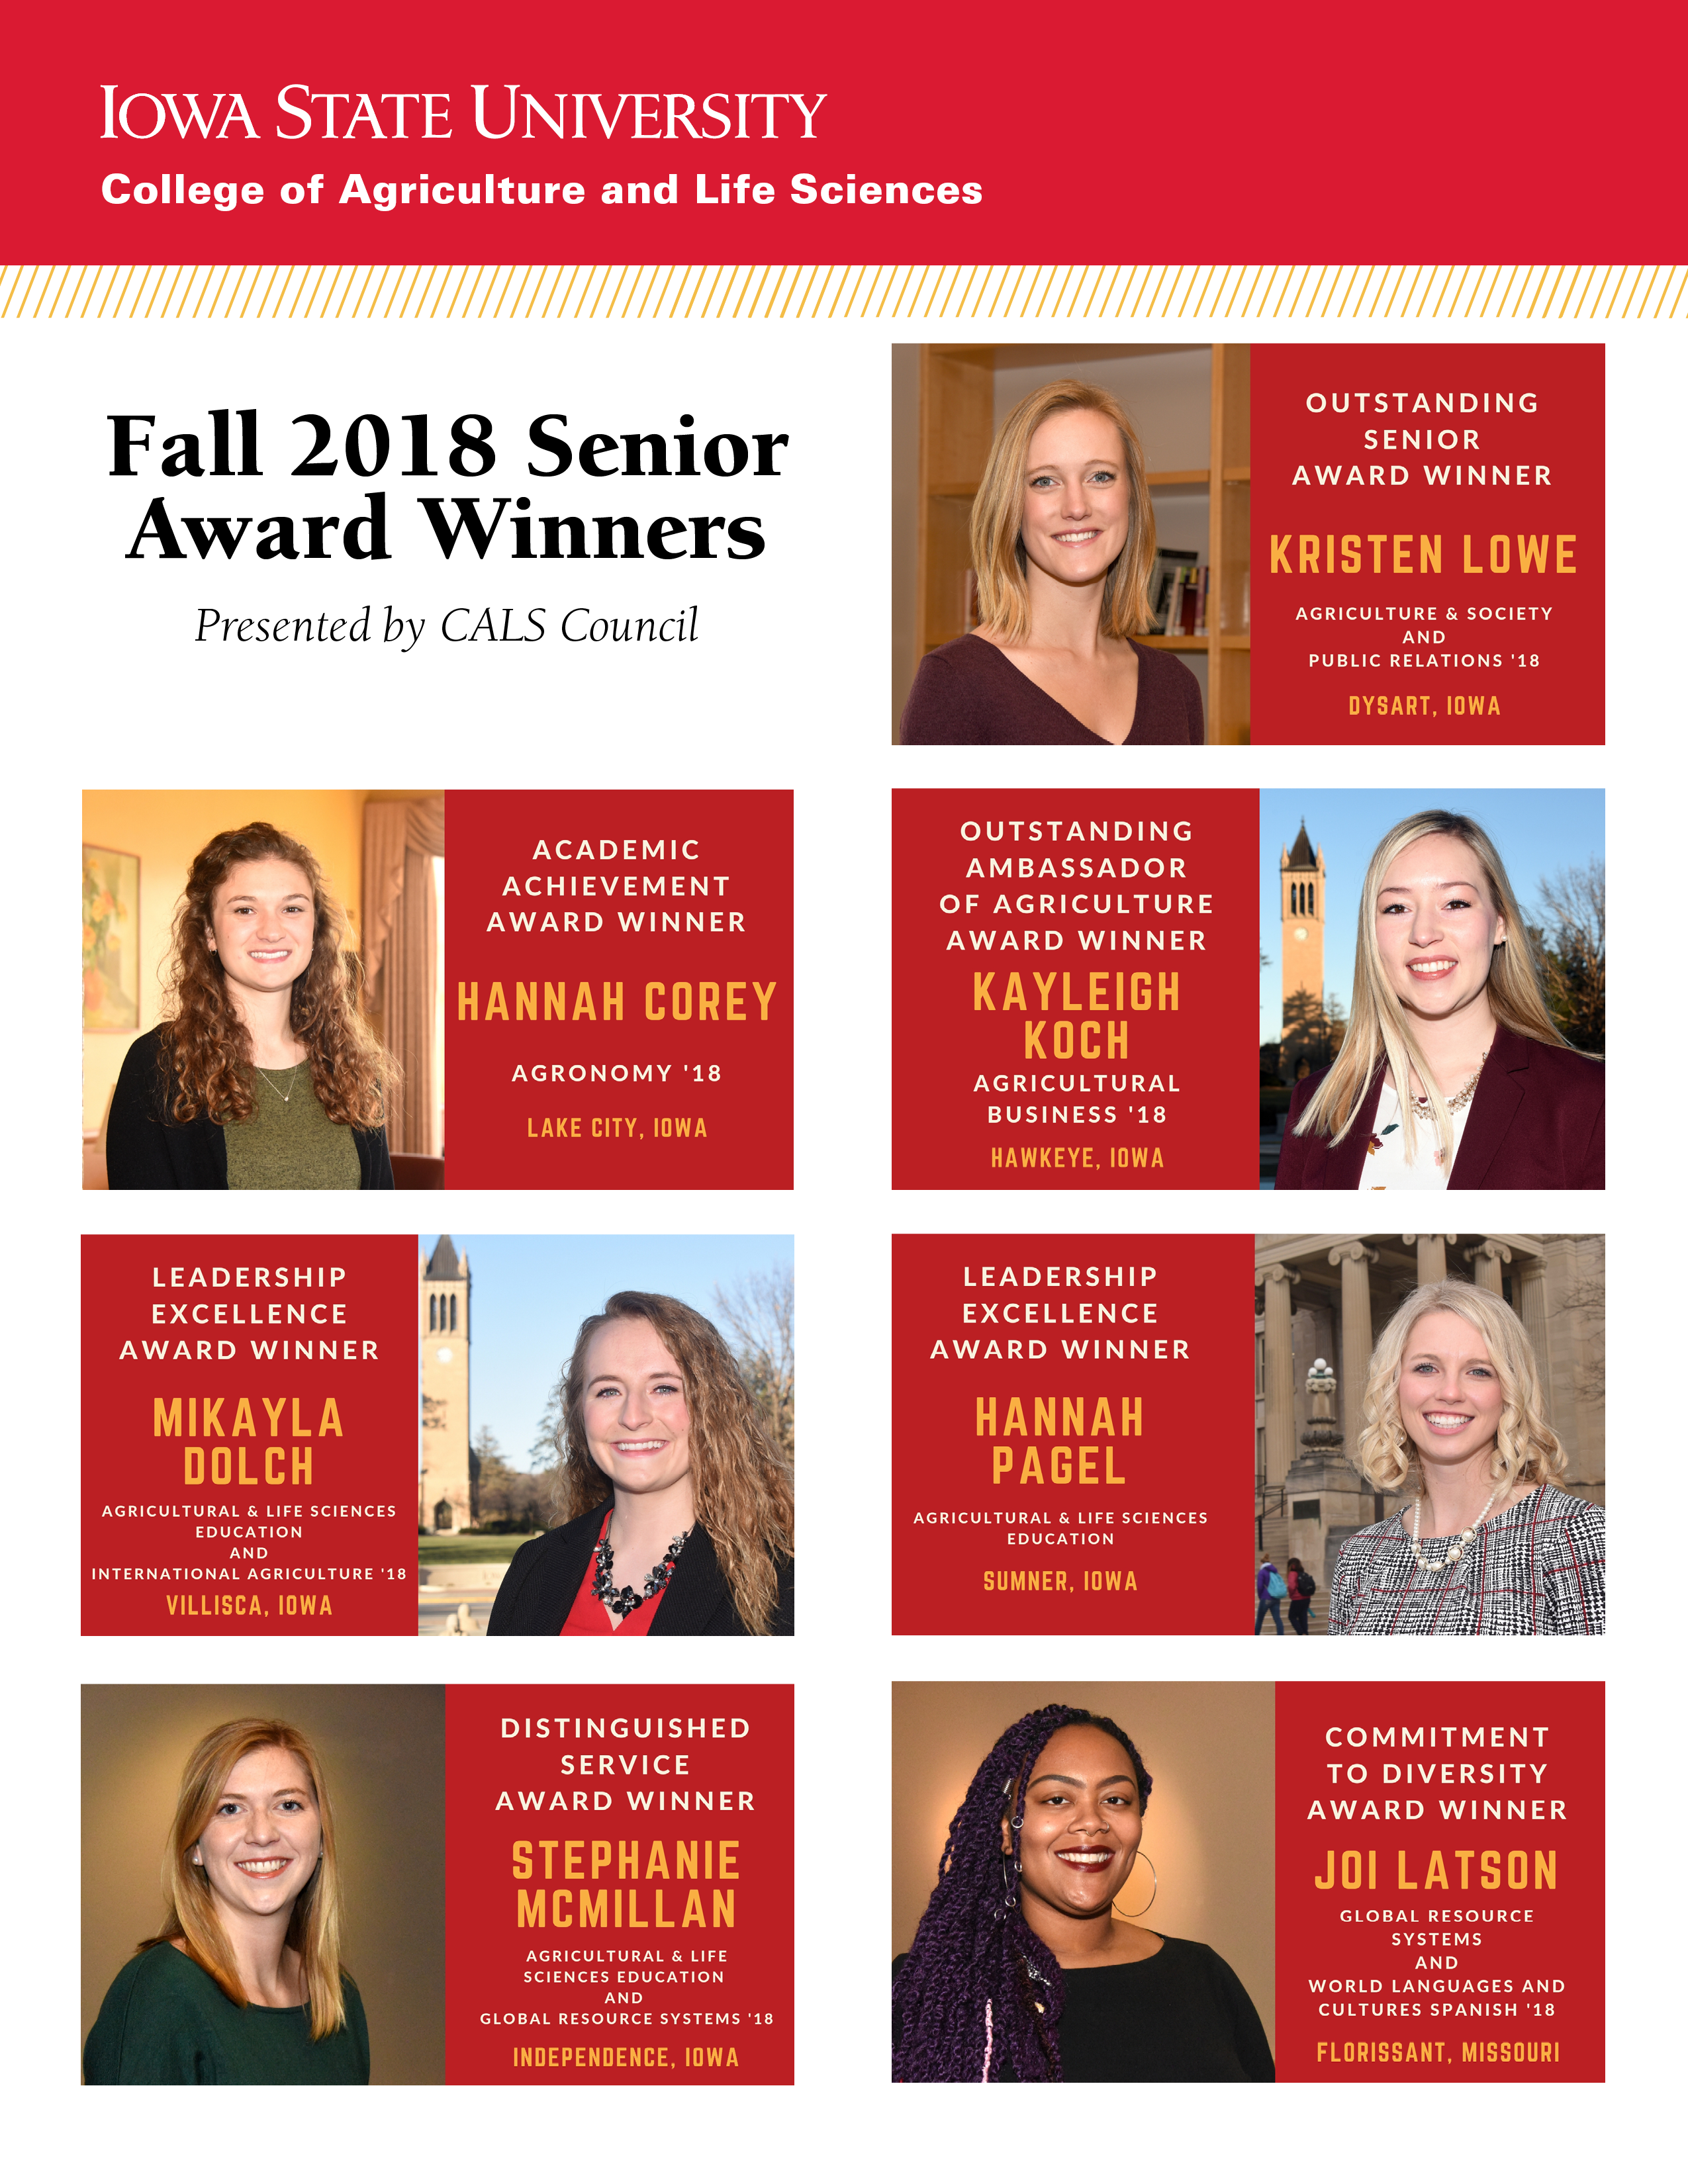 Fall 2018 council senior awards